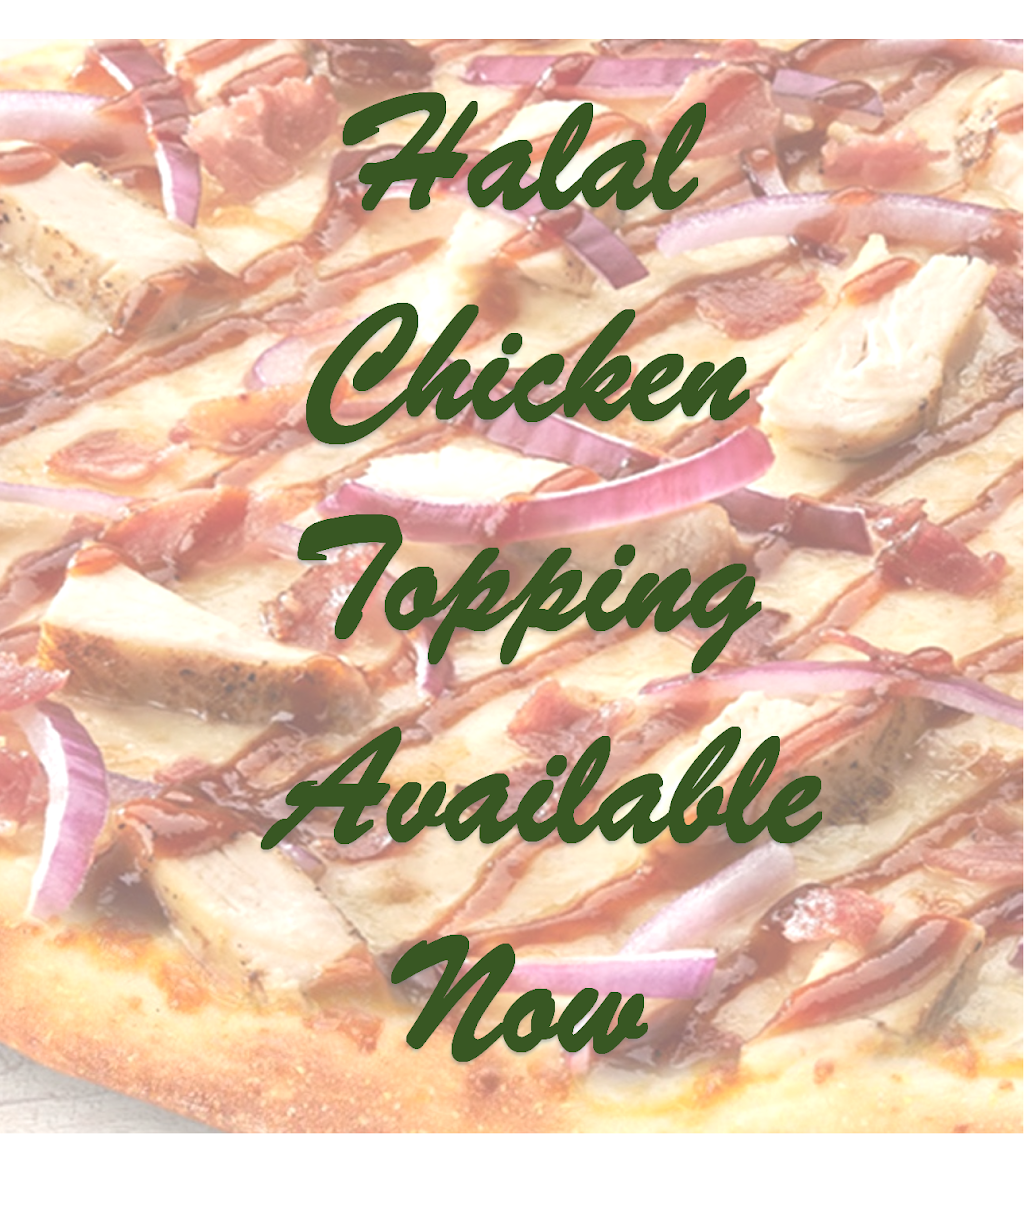 Twice The Deal Pizza | restaurant | 148 Guelph St, Georgetown, ON L7G 4A6, Canada | 9058777111 OR +1 905-877-7111